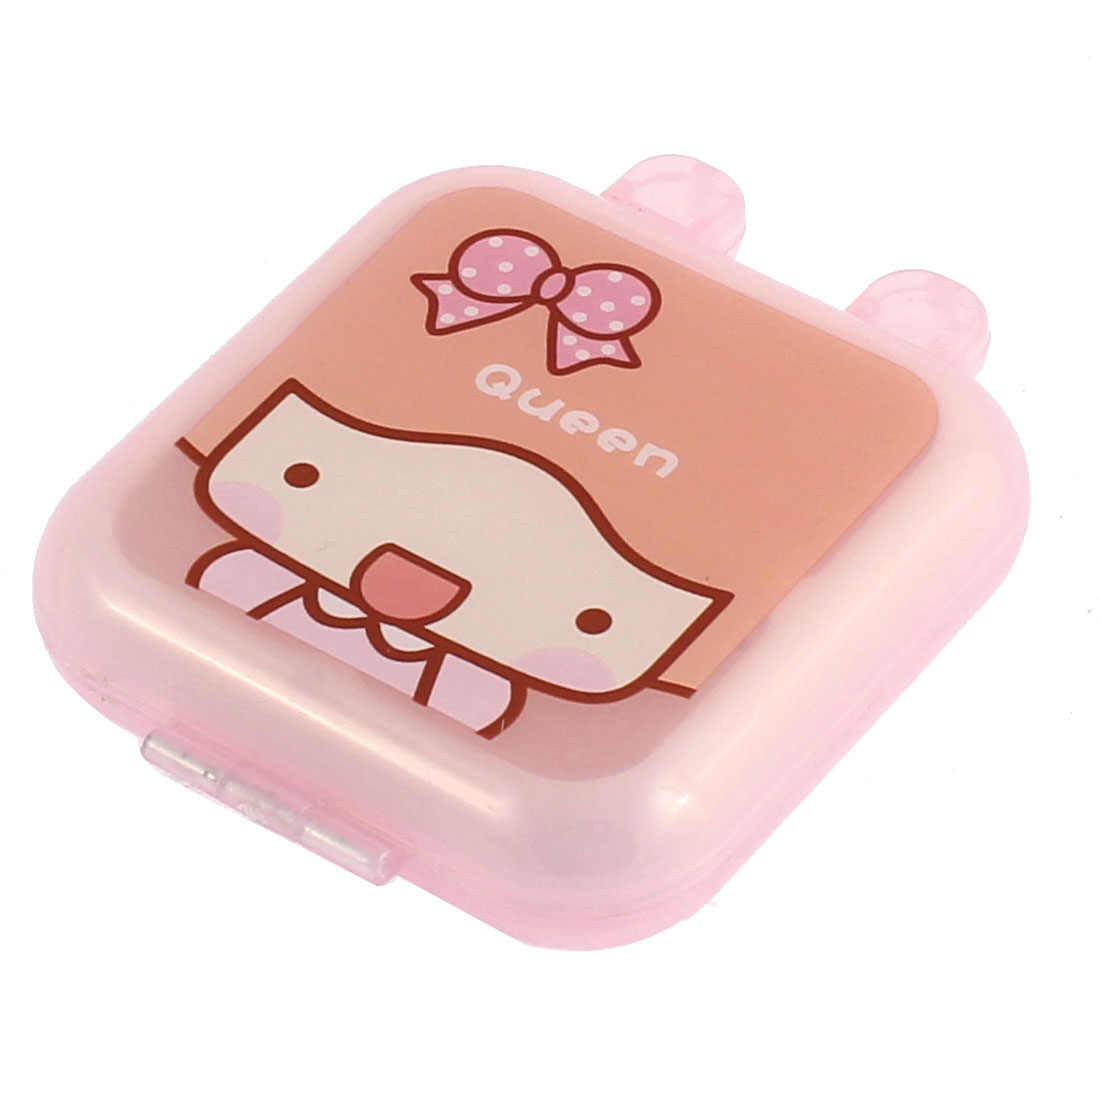 Plastic Square Girl Pattern 4 Slots Storage Box Container Case Pink